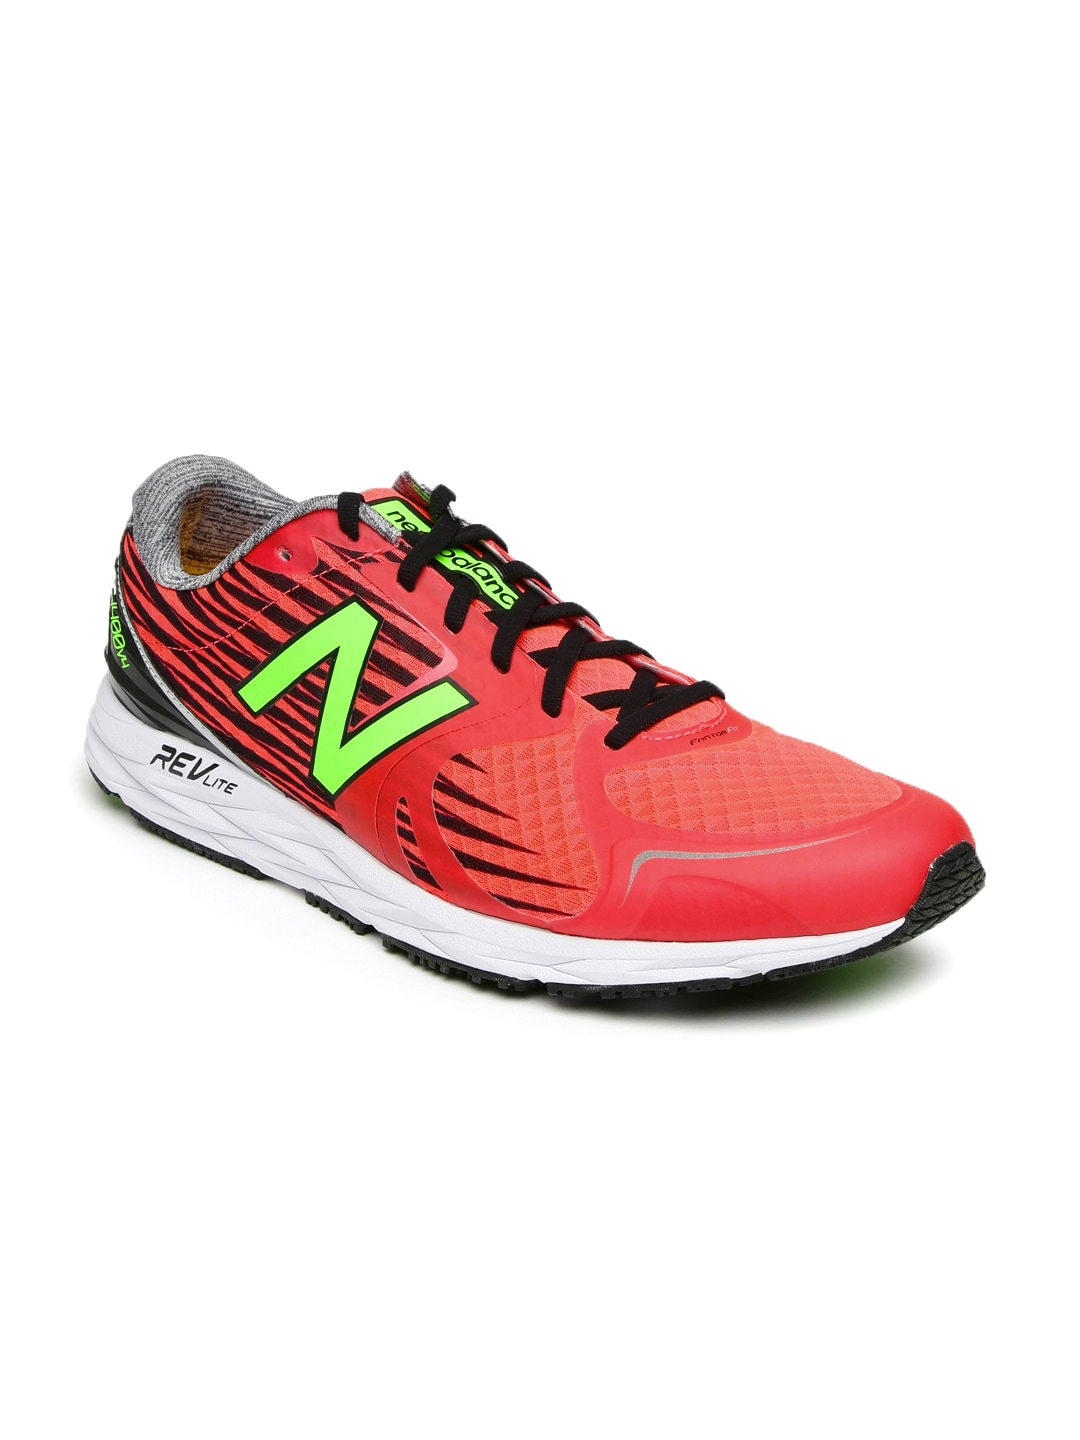 Men s New Balance Shoes - Buy New Balance Shoes for Men Online in India 2a2095abb